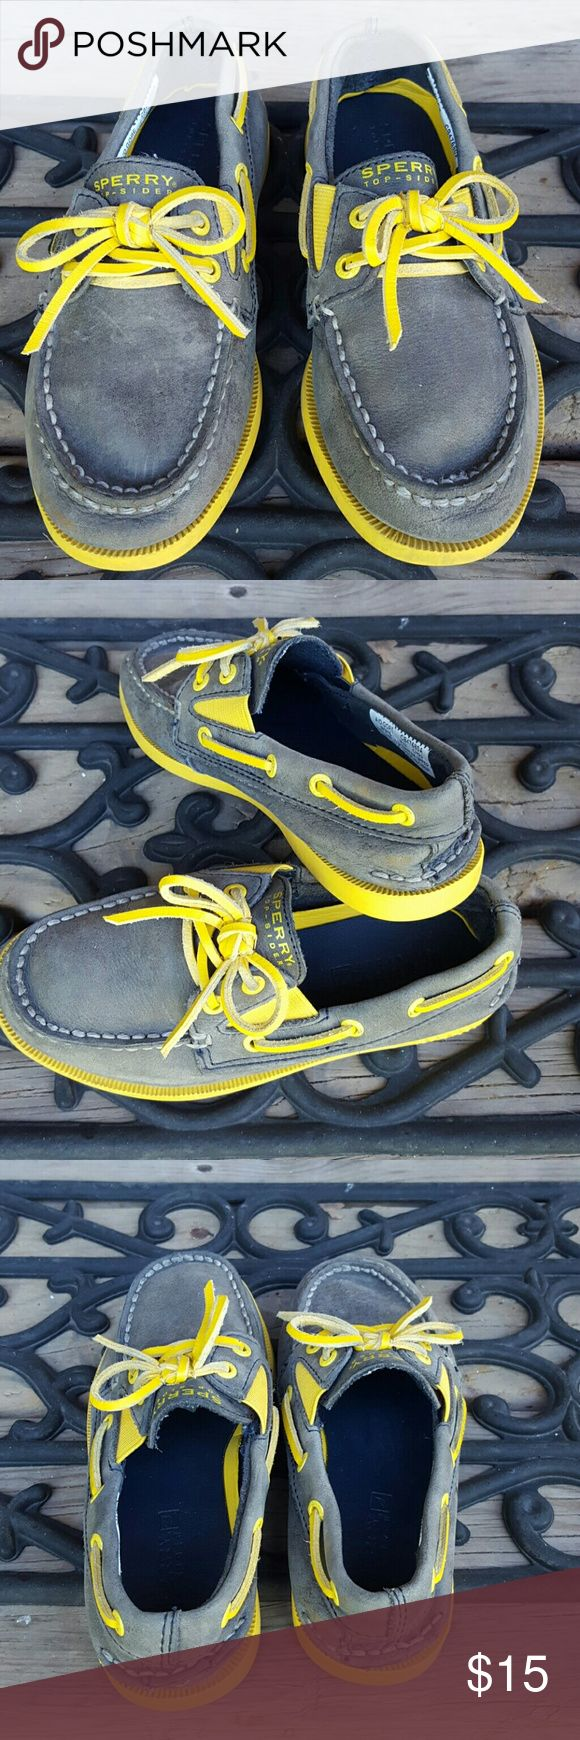 Final price⬇boy suade Sperry Top-Sider shoes 11 Gray suade and yellow toddler Sperry Top-Sider boat shoes are too cute! Size 11. The sunny yellow gives such a nice pop of color to the muted gray suade. In good use condition. No rips, tears or stains. The back heel has an embossed sperry logo, no sperry tab on the back of the sole (came lose so it was removed) I'm listing a total of 4 sperry boys shoes, in similar size. Thank you! Sperry Top-Sider Shoes Moccasins